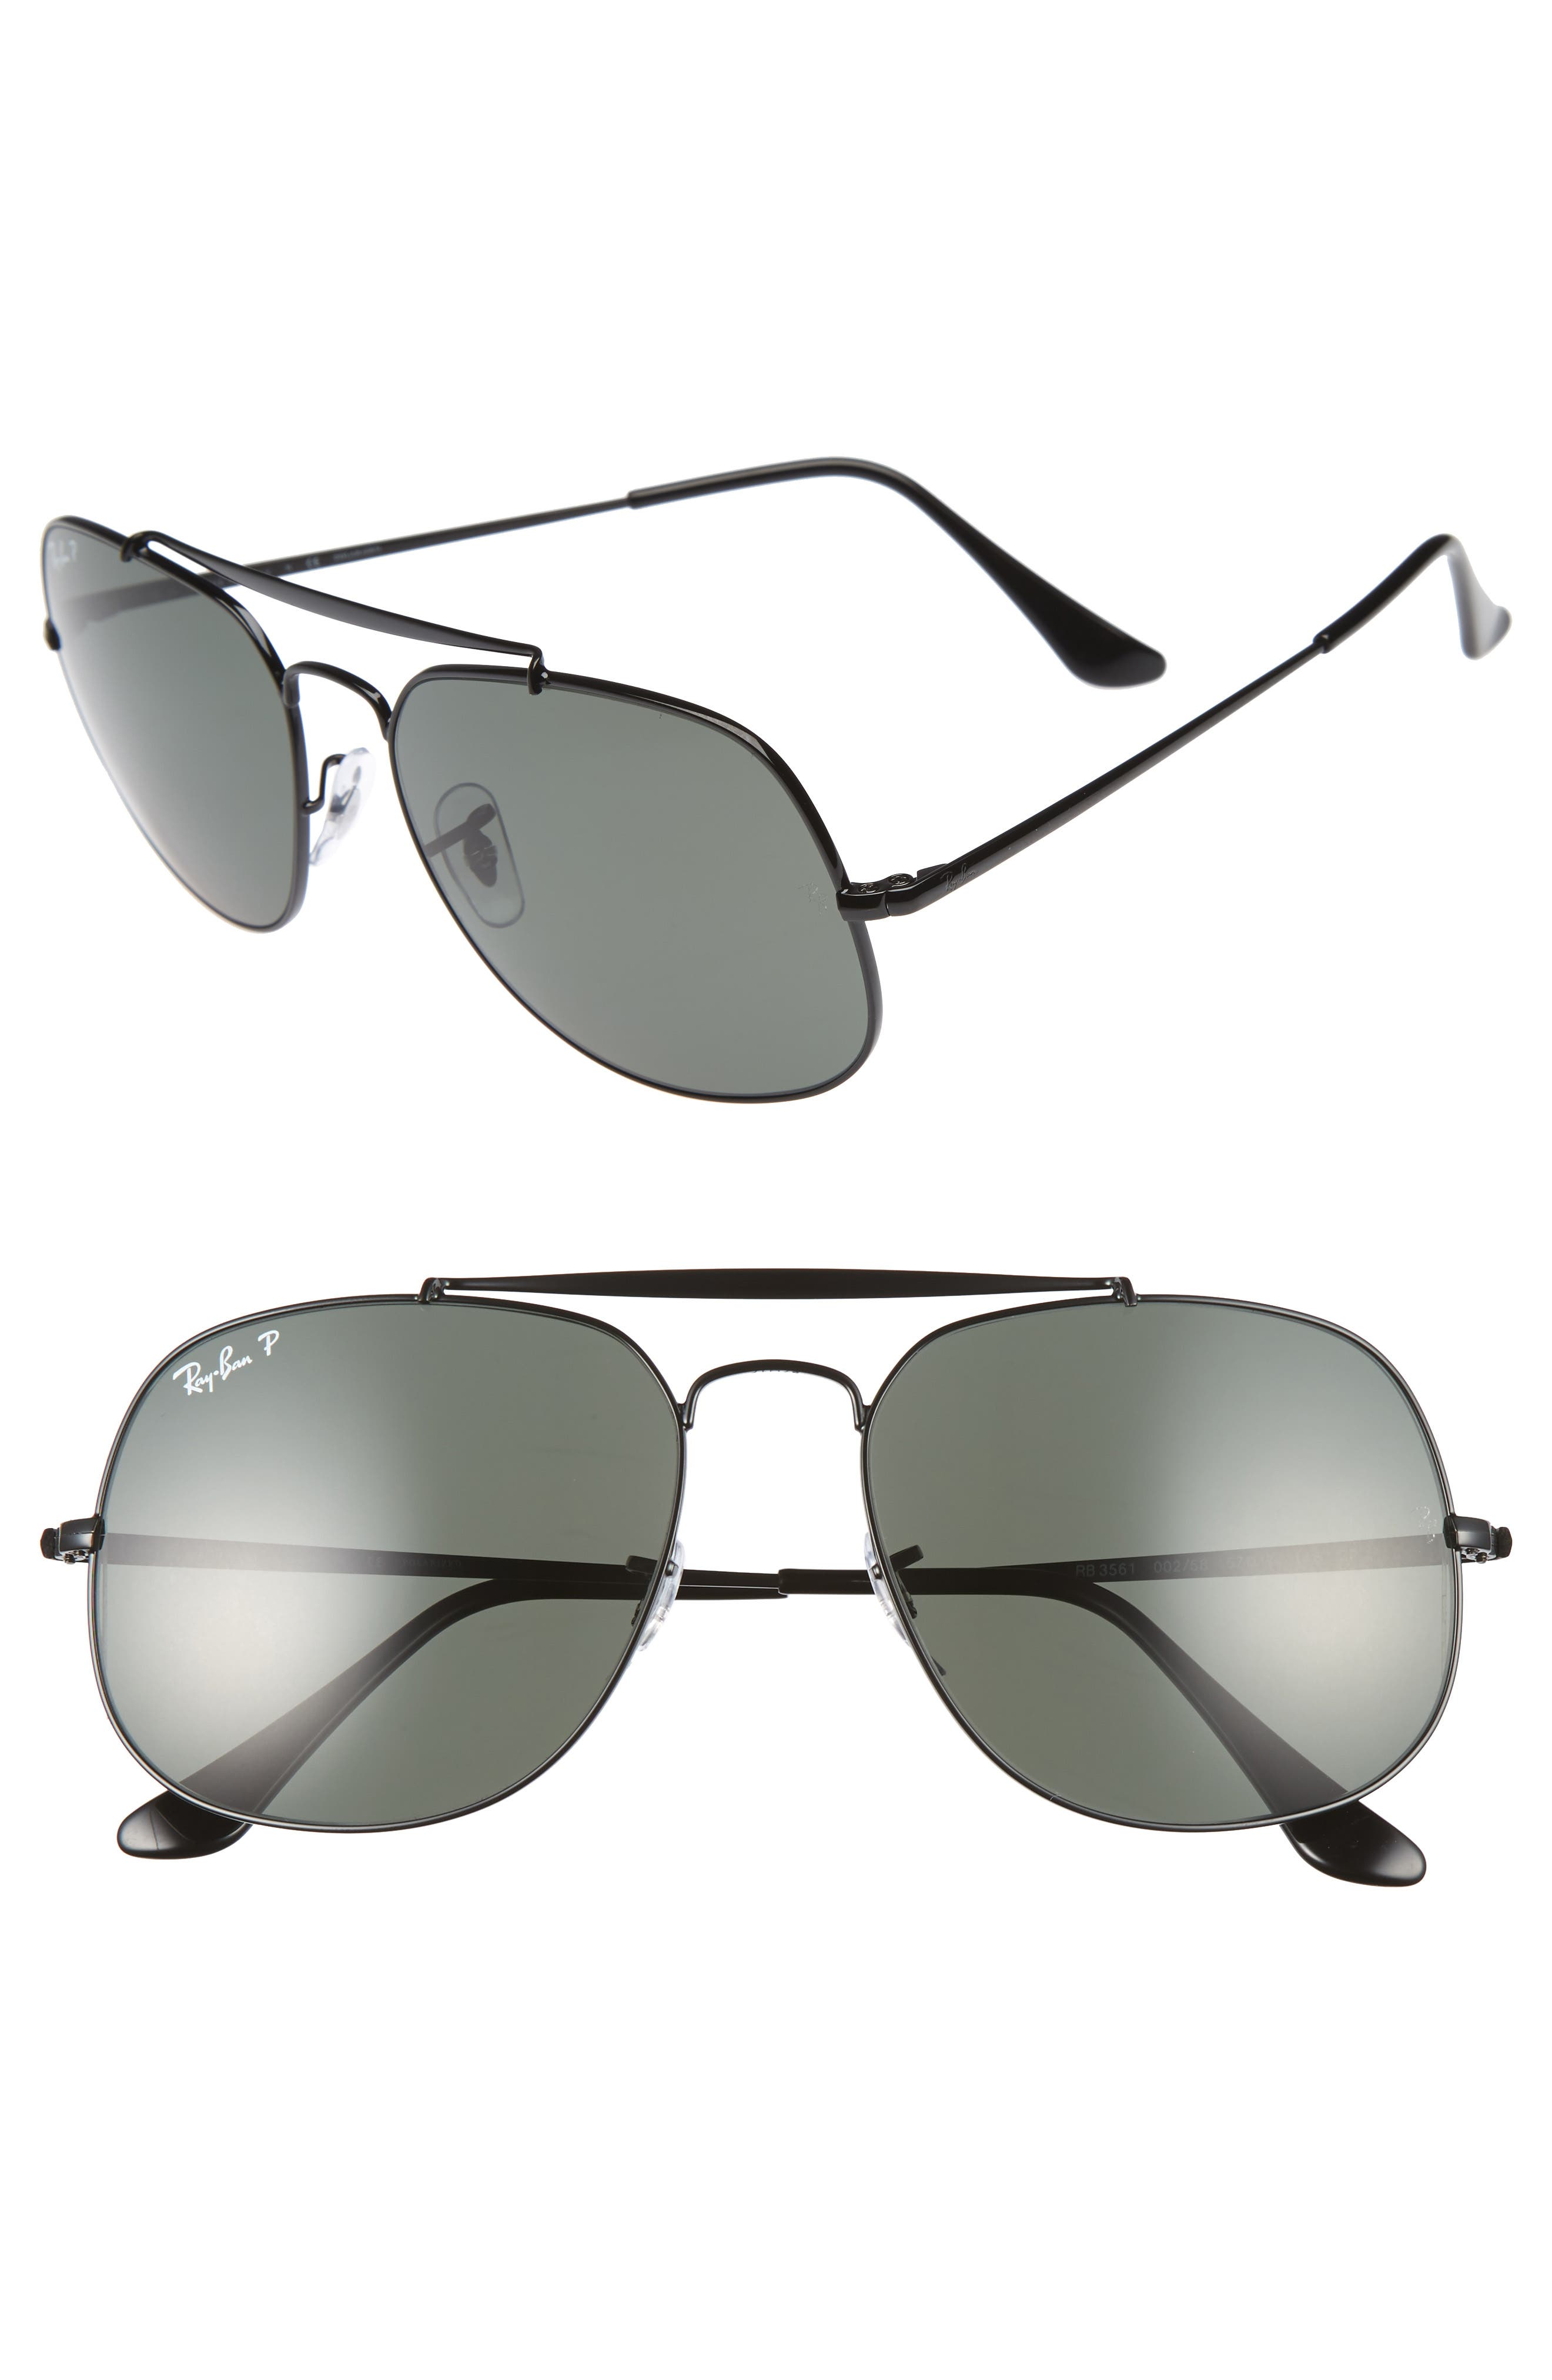 Ray-Ban The General 57mm Polarized Sunglasses